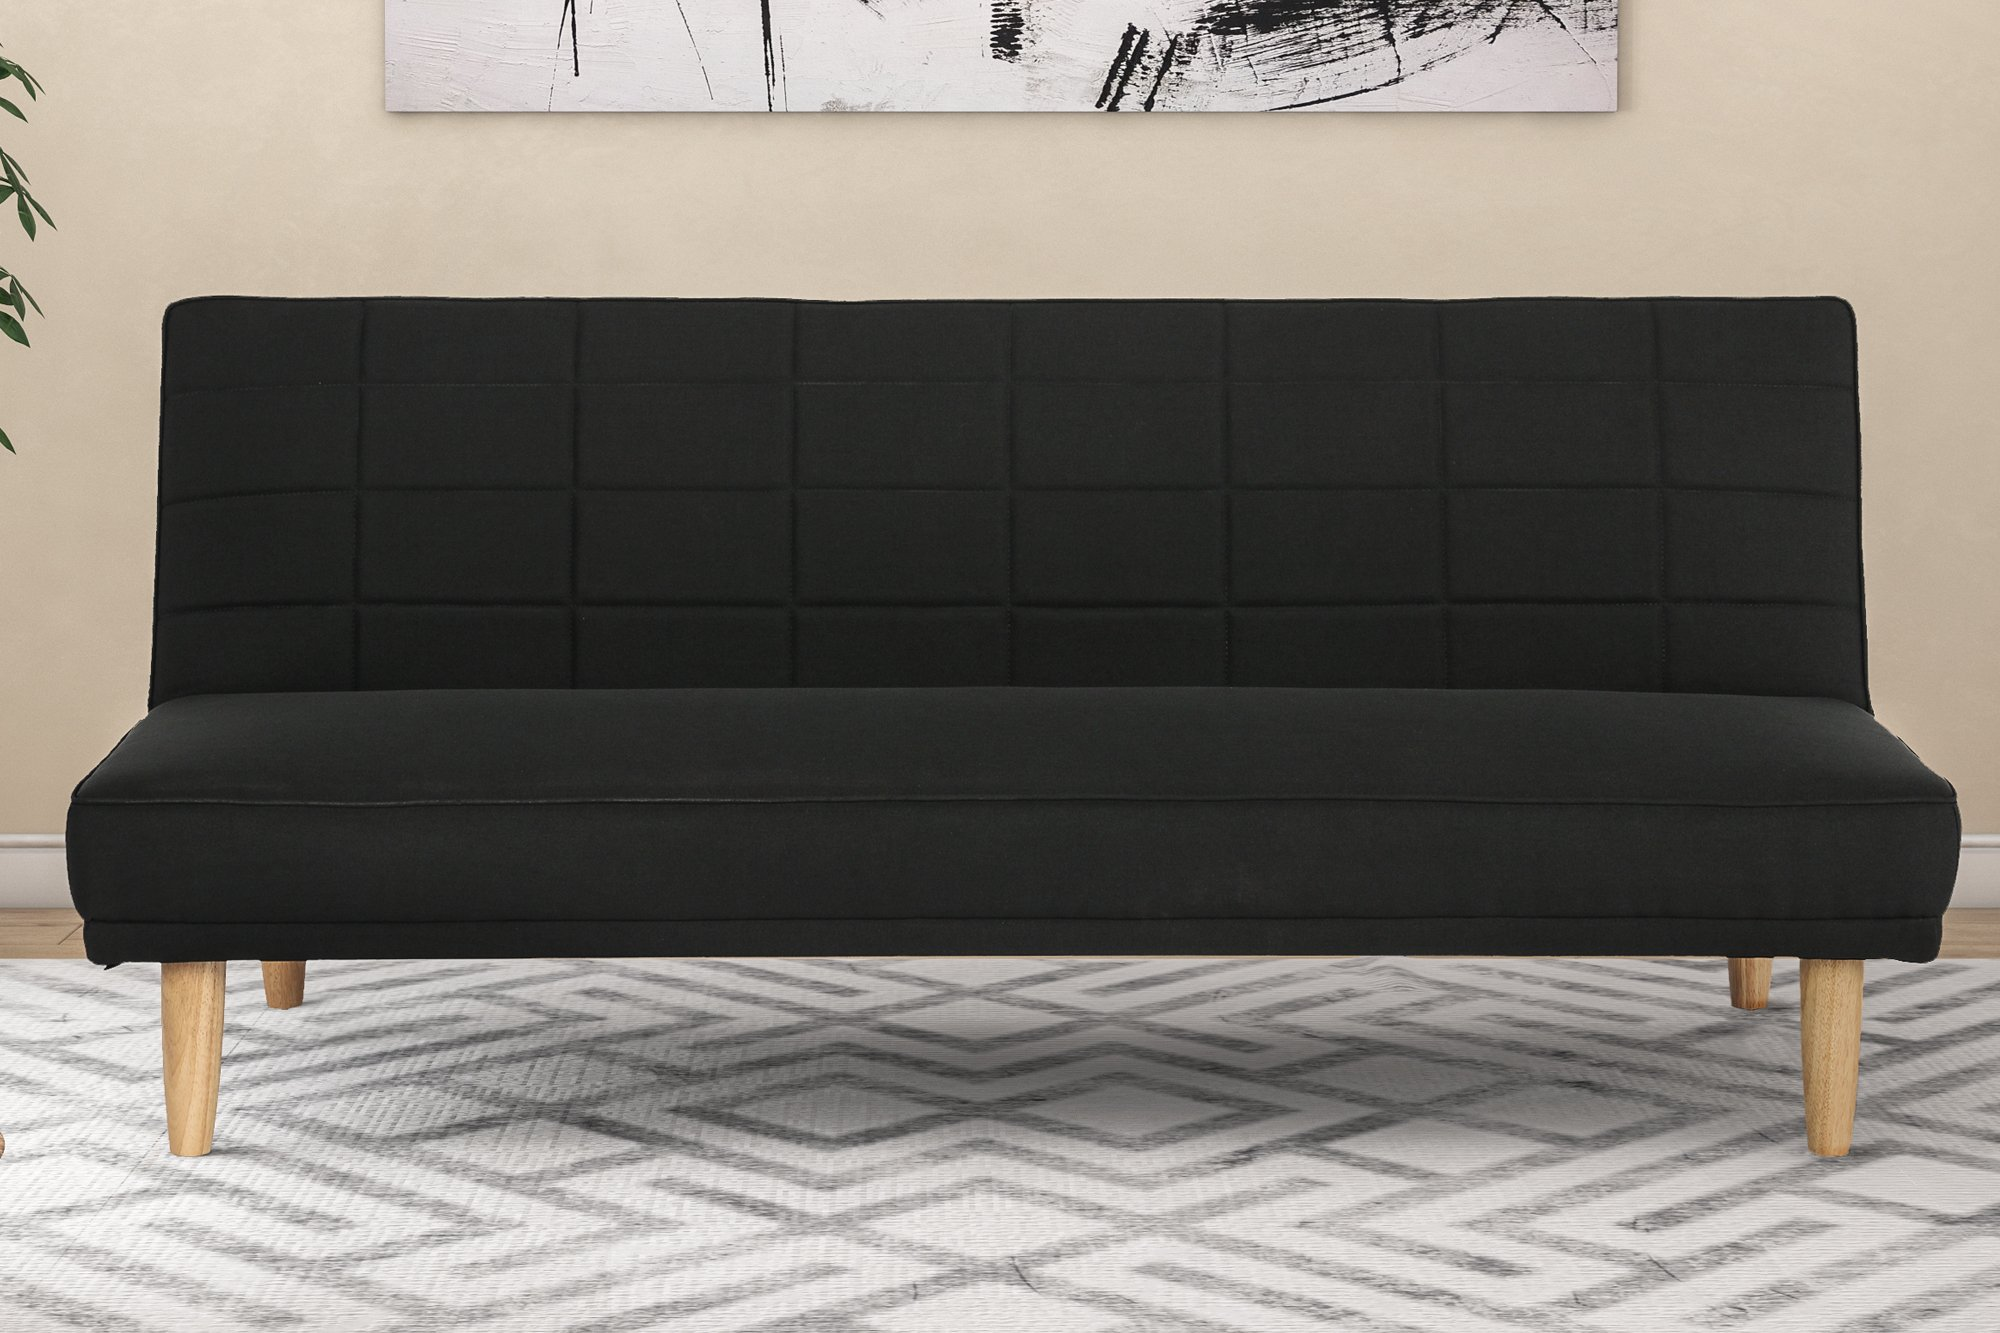 DHP Estera Sofa Sleeper Futon, Rich Black Linen Upholstery With Natural Wooden Legs